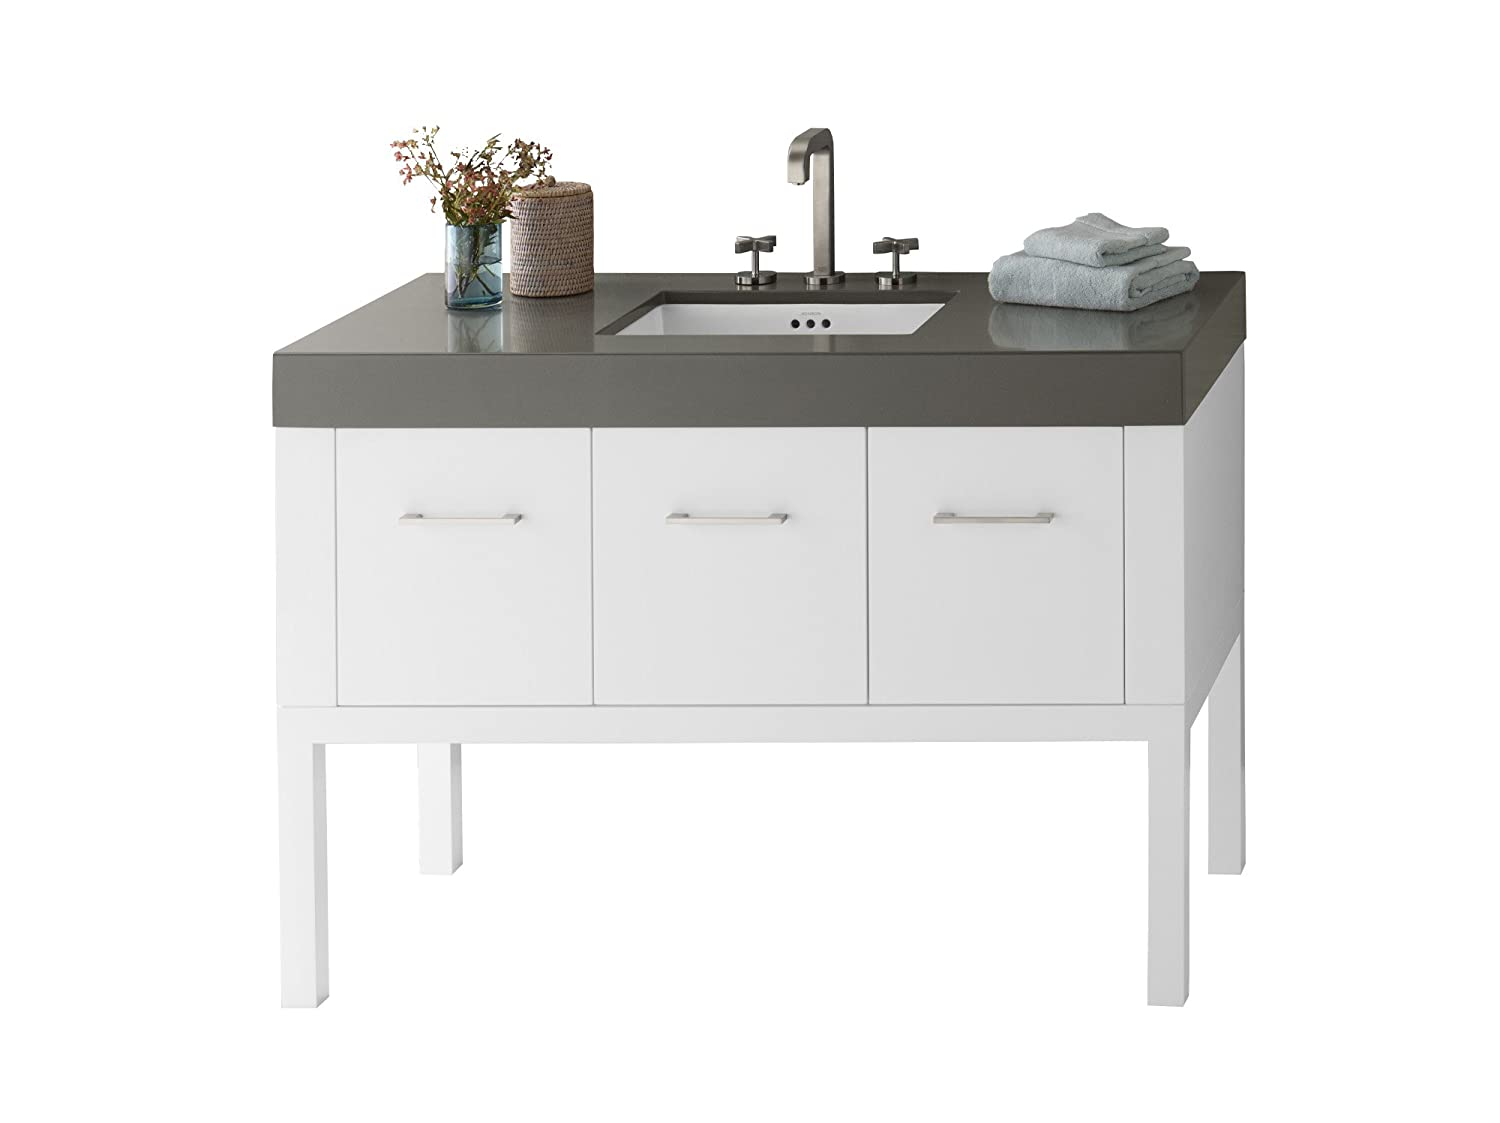 50%OFF RONBOW Calabria 49 inch Bathroom Vanity Set in White, Bathroom Vanity with Top and Backsplash in Gray with 8 inch Widespread Faucet Hole, White Ceramic Vessel Sink 036848-W01_Kit_1